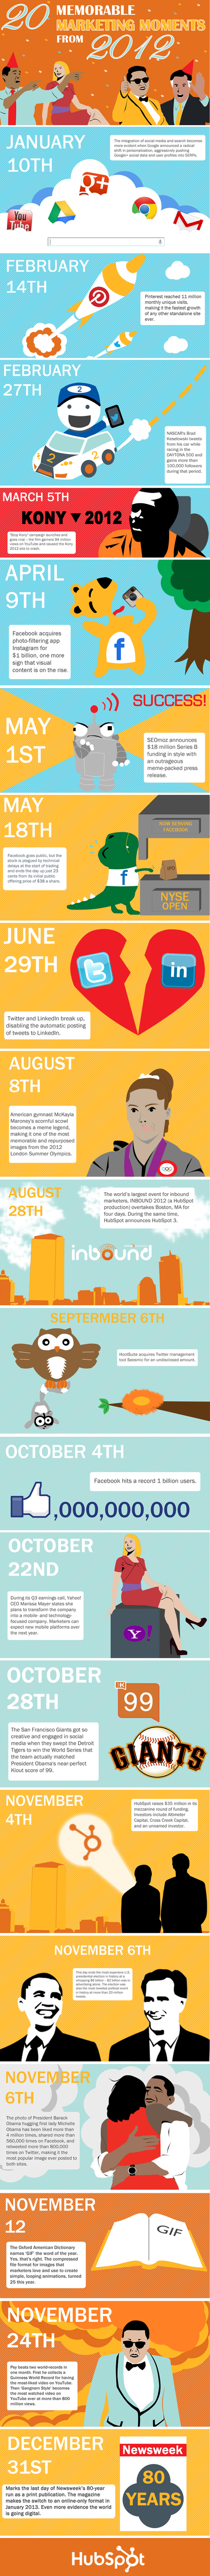 20 of the Most Memorable Marketing Moments in 2012 [INFOGRAPHIC] | Social Media (network, technology, blog, community, virtual reality, etc...) | Scoop.it